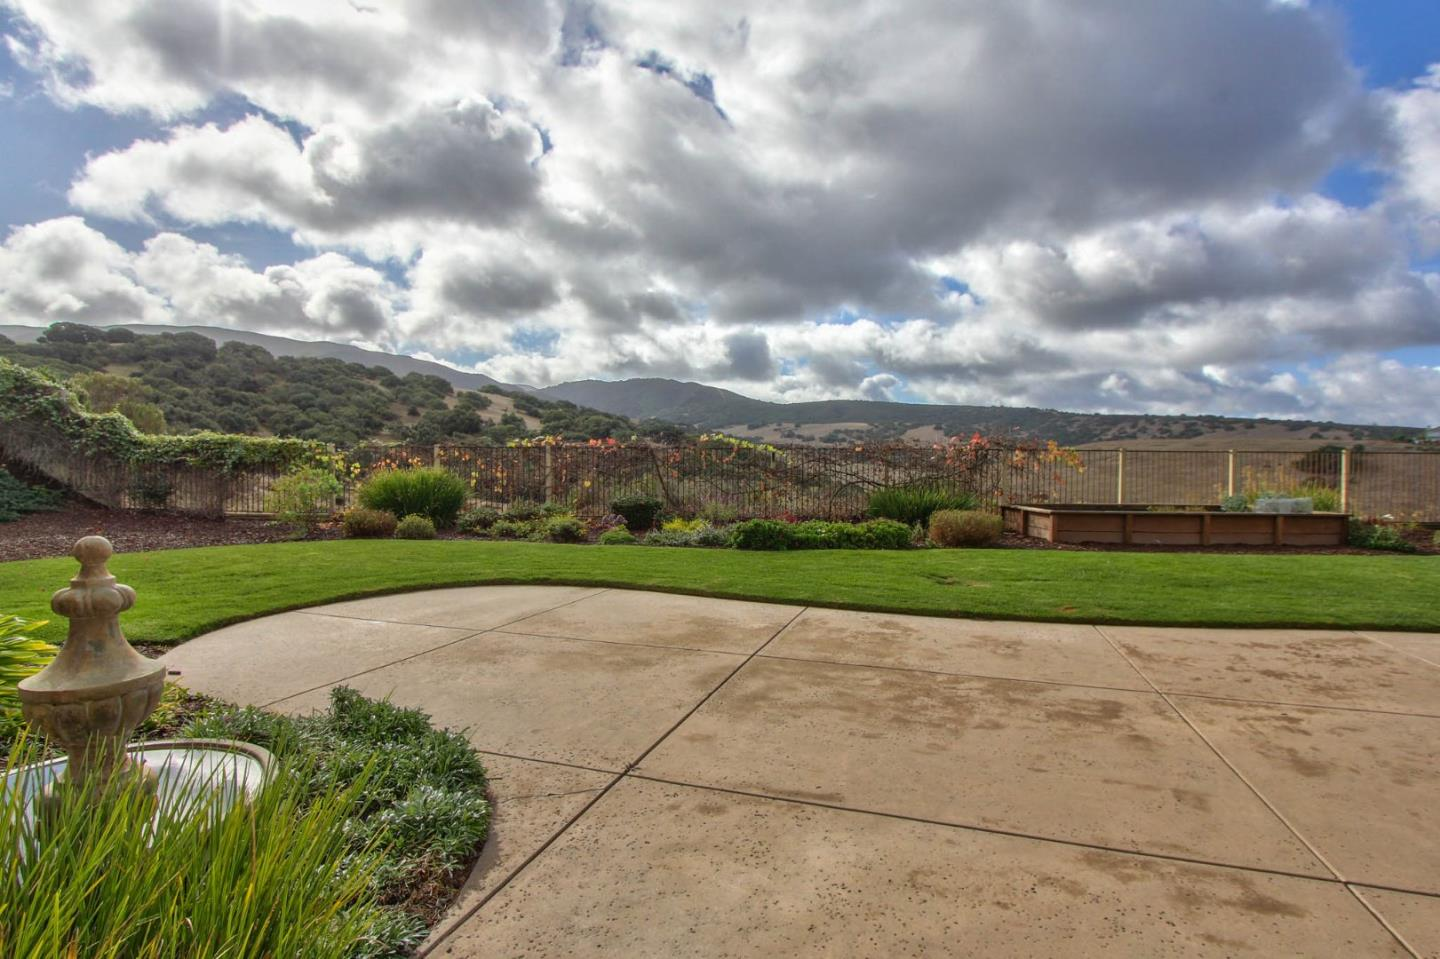 27235 Cortina Way, Salinas, CA 93908 $865,000 www.churches4sale.com ...